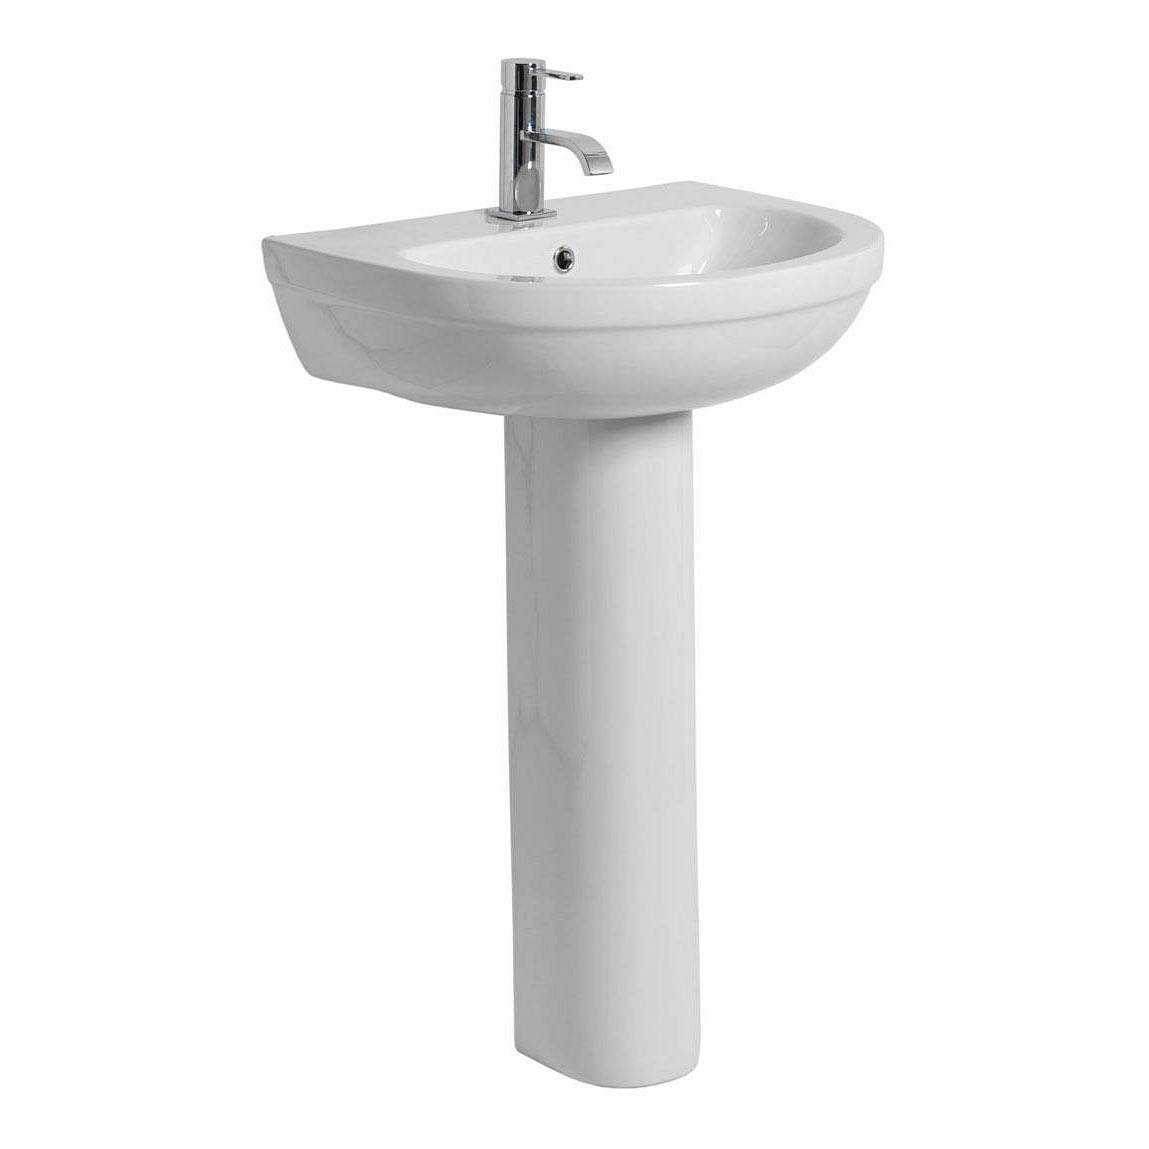 Image of Balance Basin & Pedestal PLUS Waste